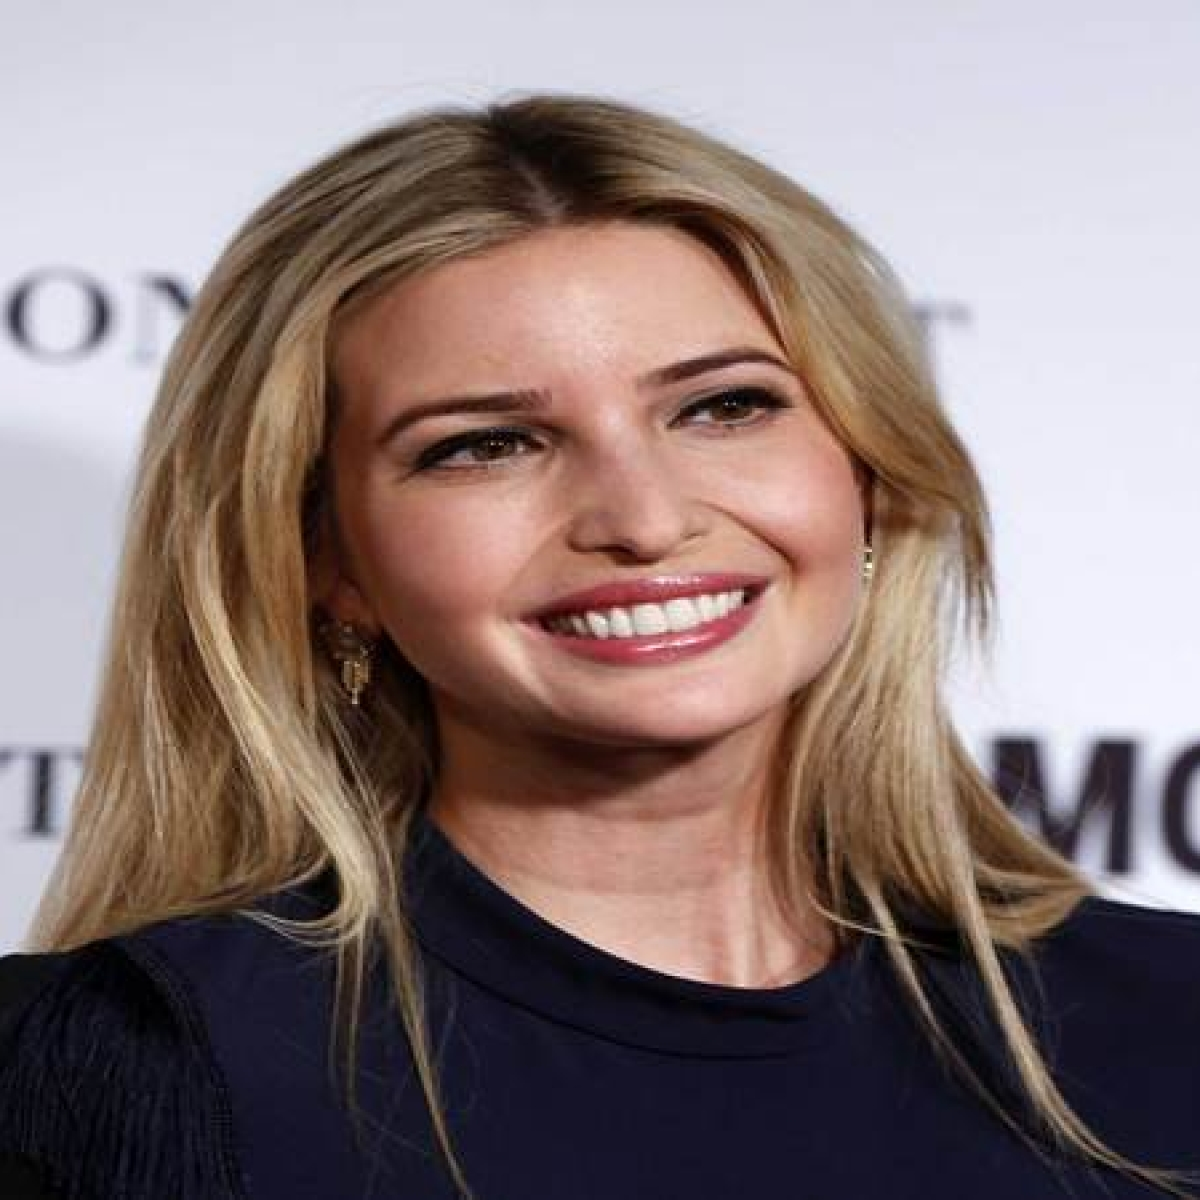 Ivanka Trump hints at leaving White House if Donald Trump is re-elected